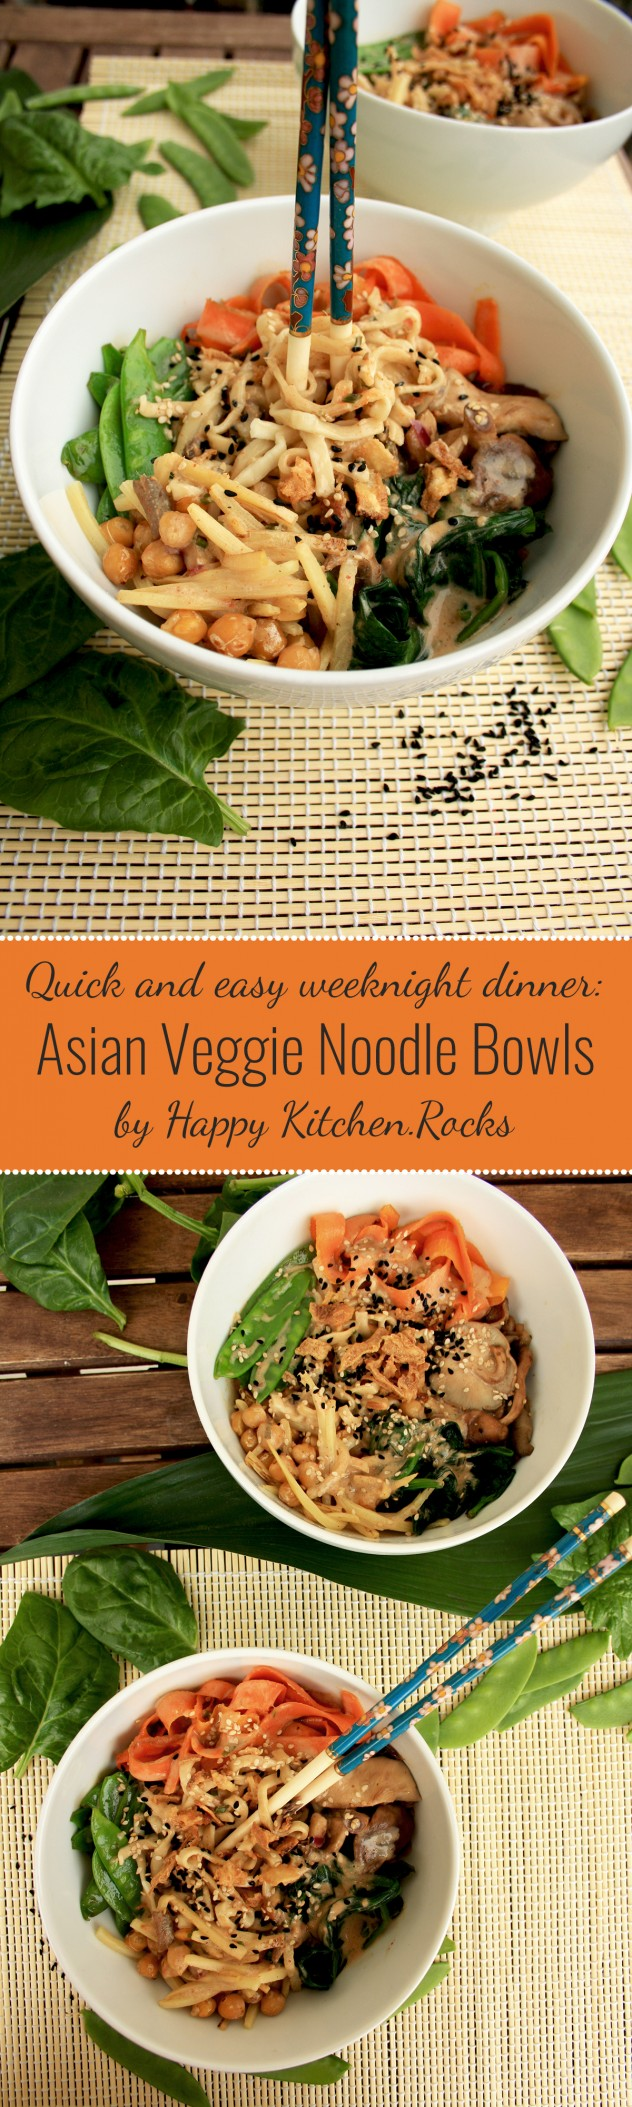 Asian Veggie Noodle Bowls: Veggie-packed flavorful dinner which is really quick to throw together and so much better than takeout! Use any veggies you like.